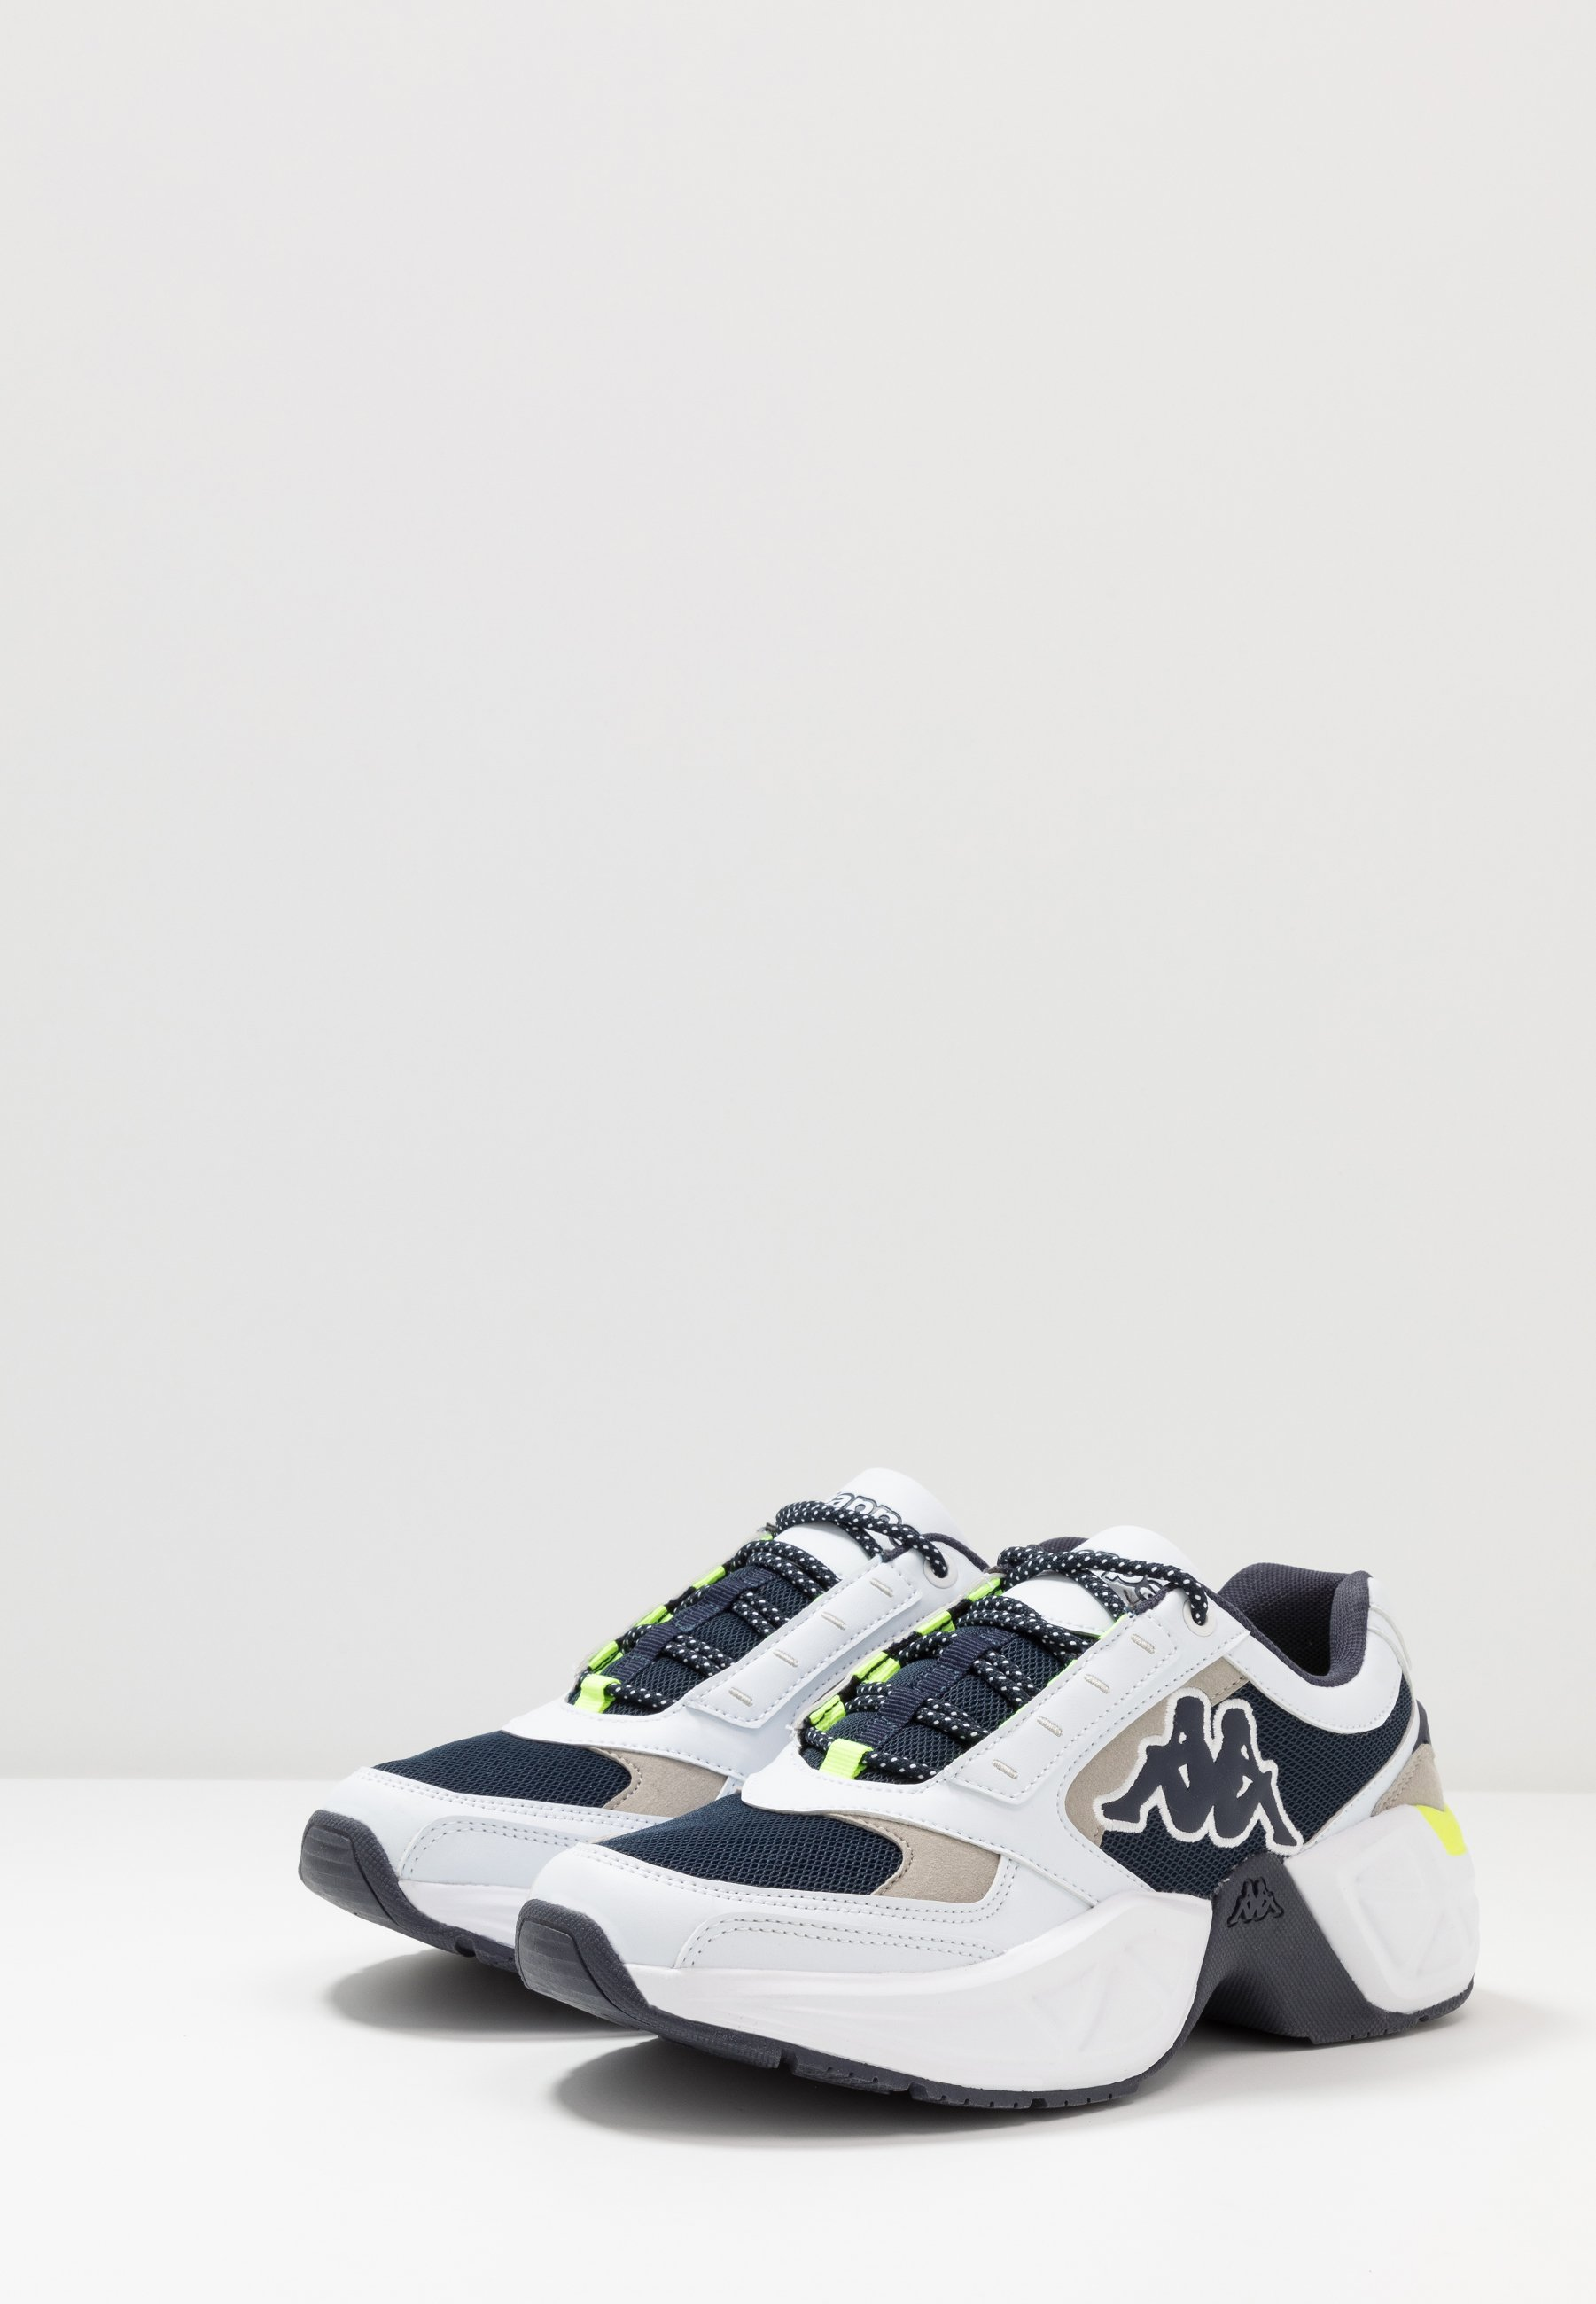 Kappa KRYPTON - Zapatillas de entrenamiento - white/navy